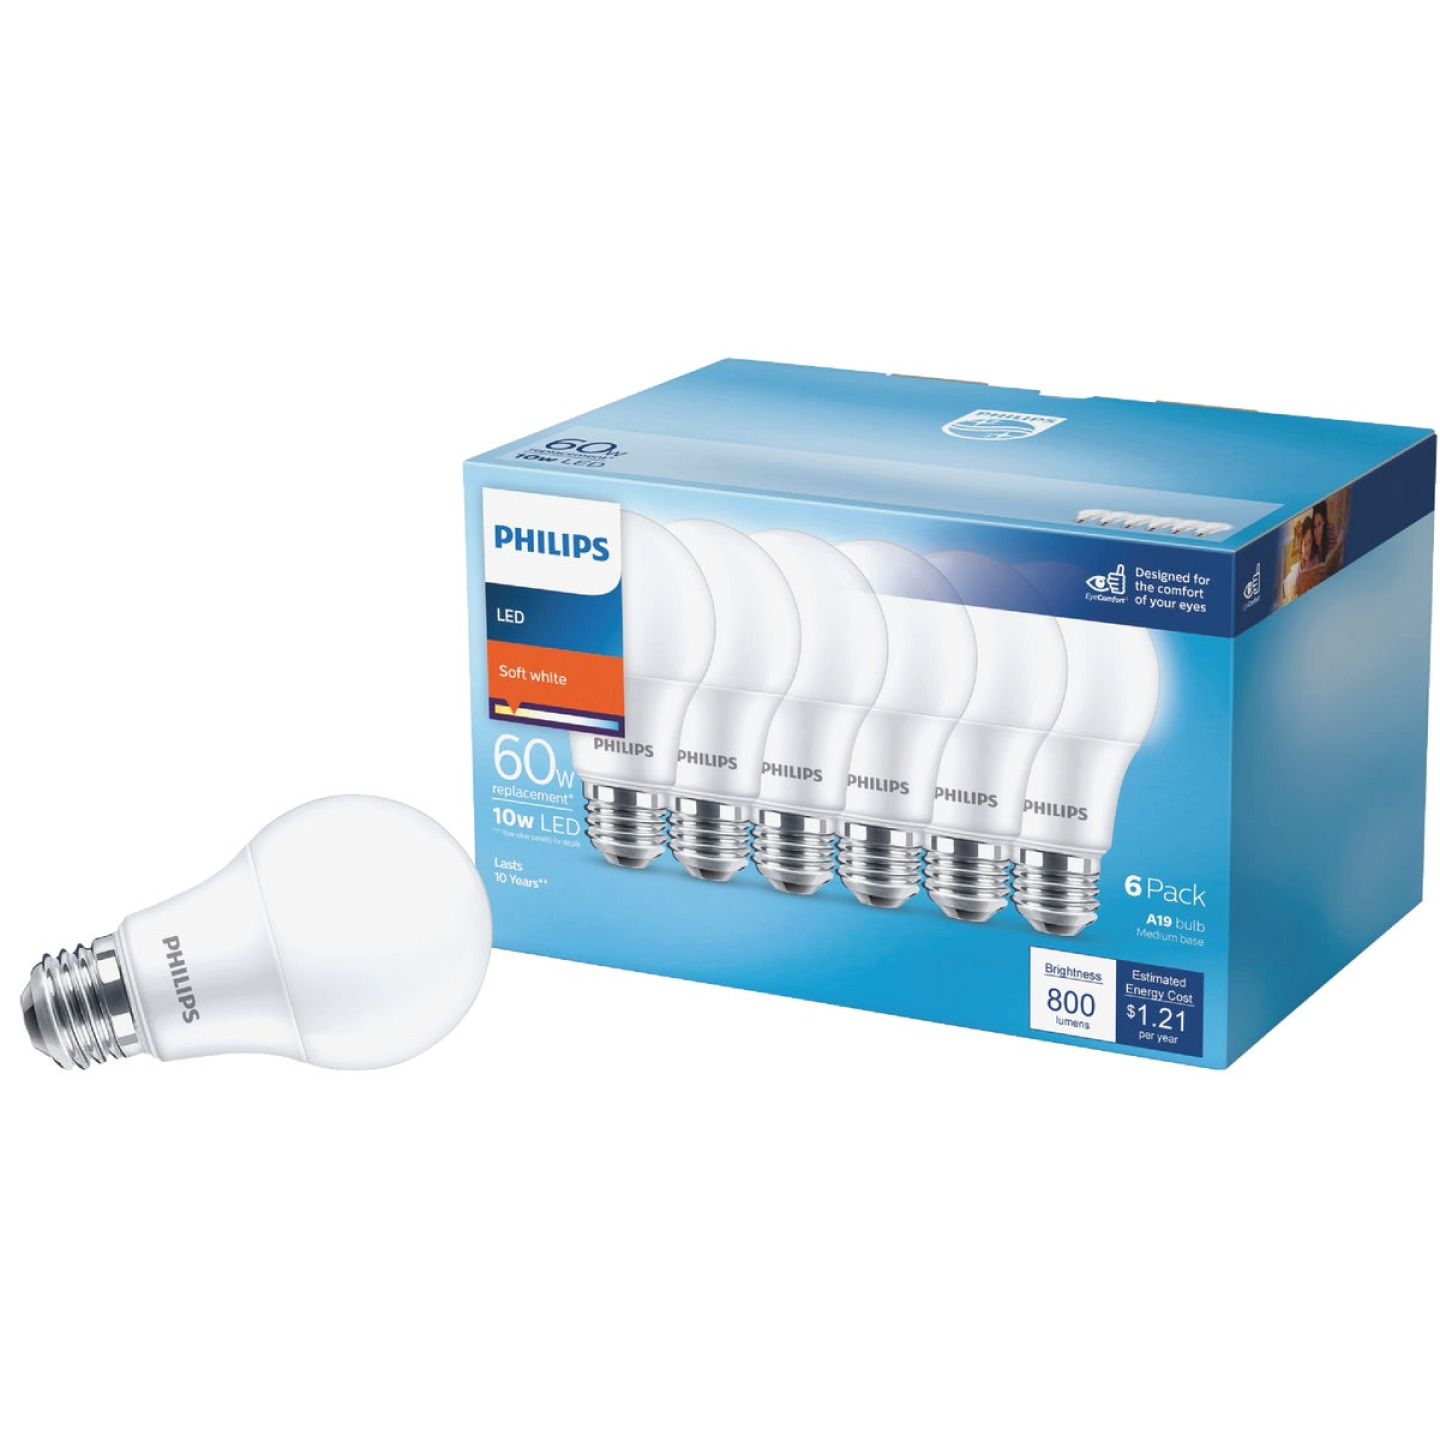 Philips 60W Equivalent Soft White A19 Medium LED Light Bulb (6-Pack) Image 1